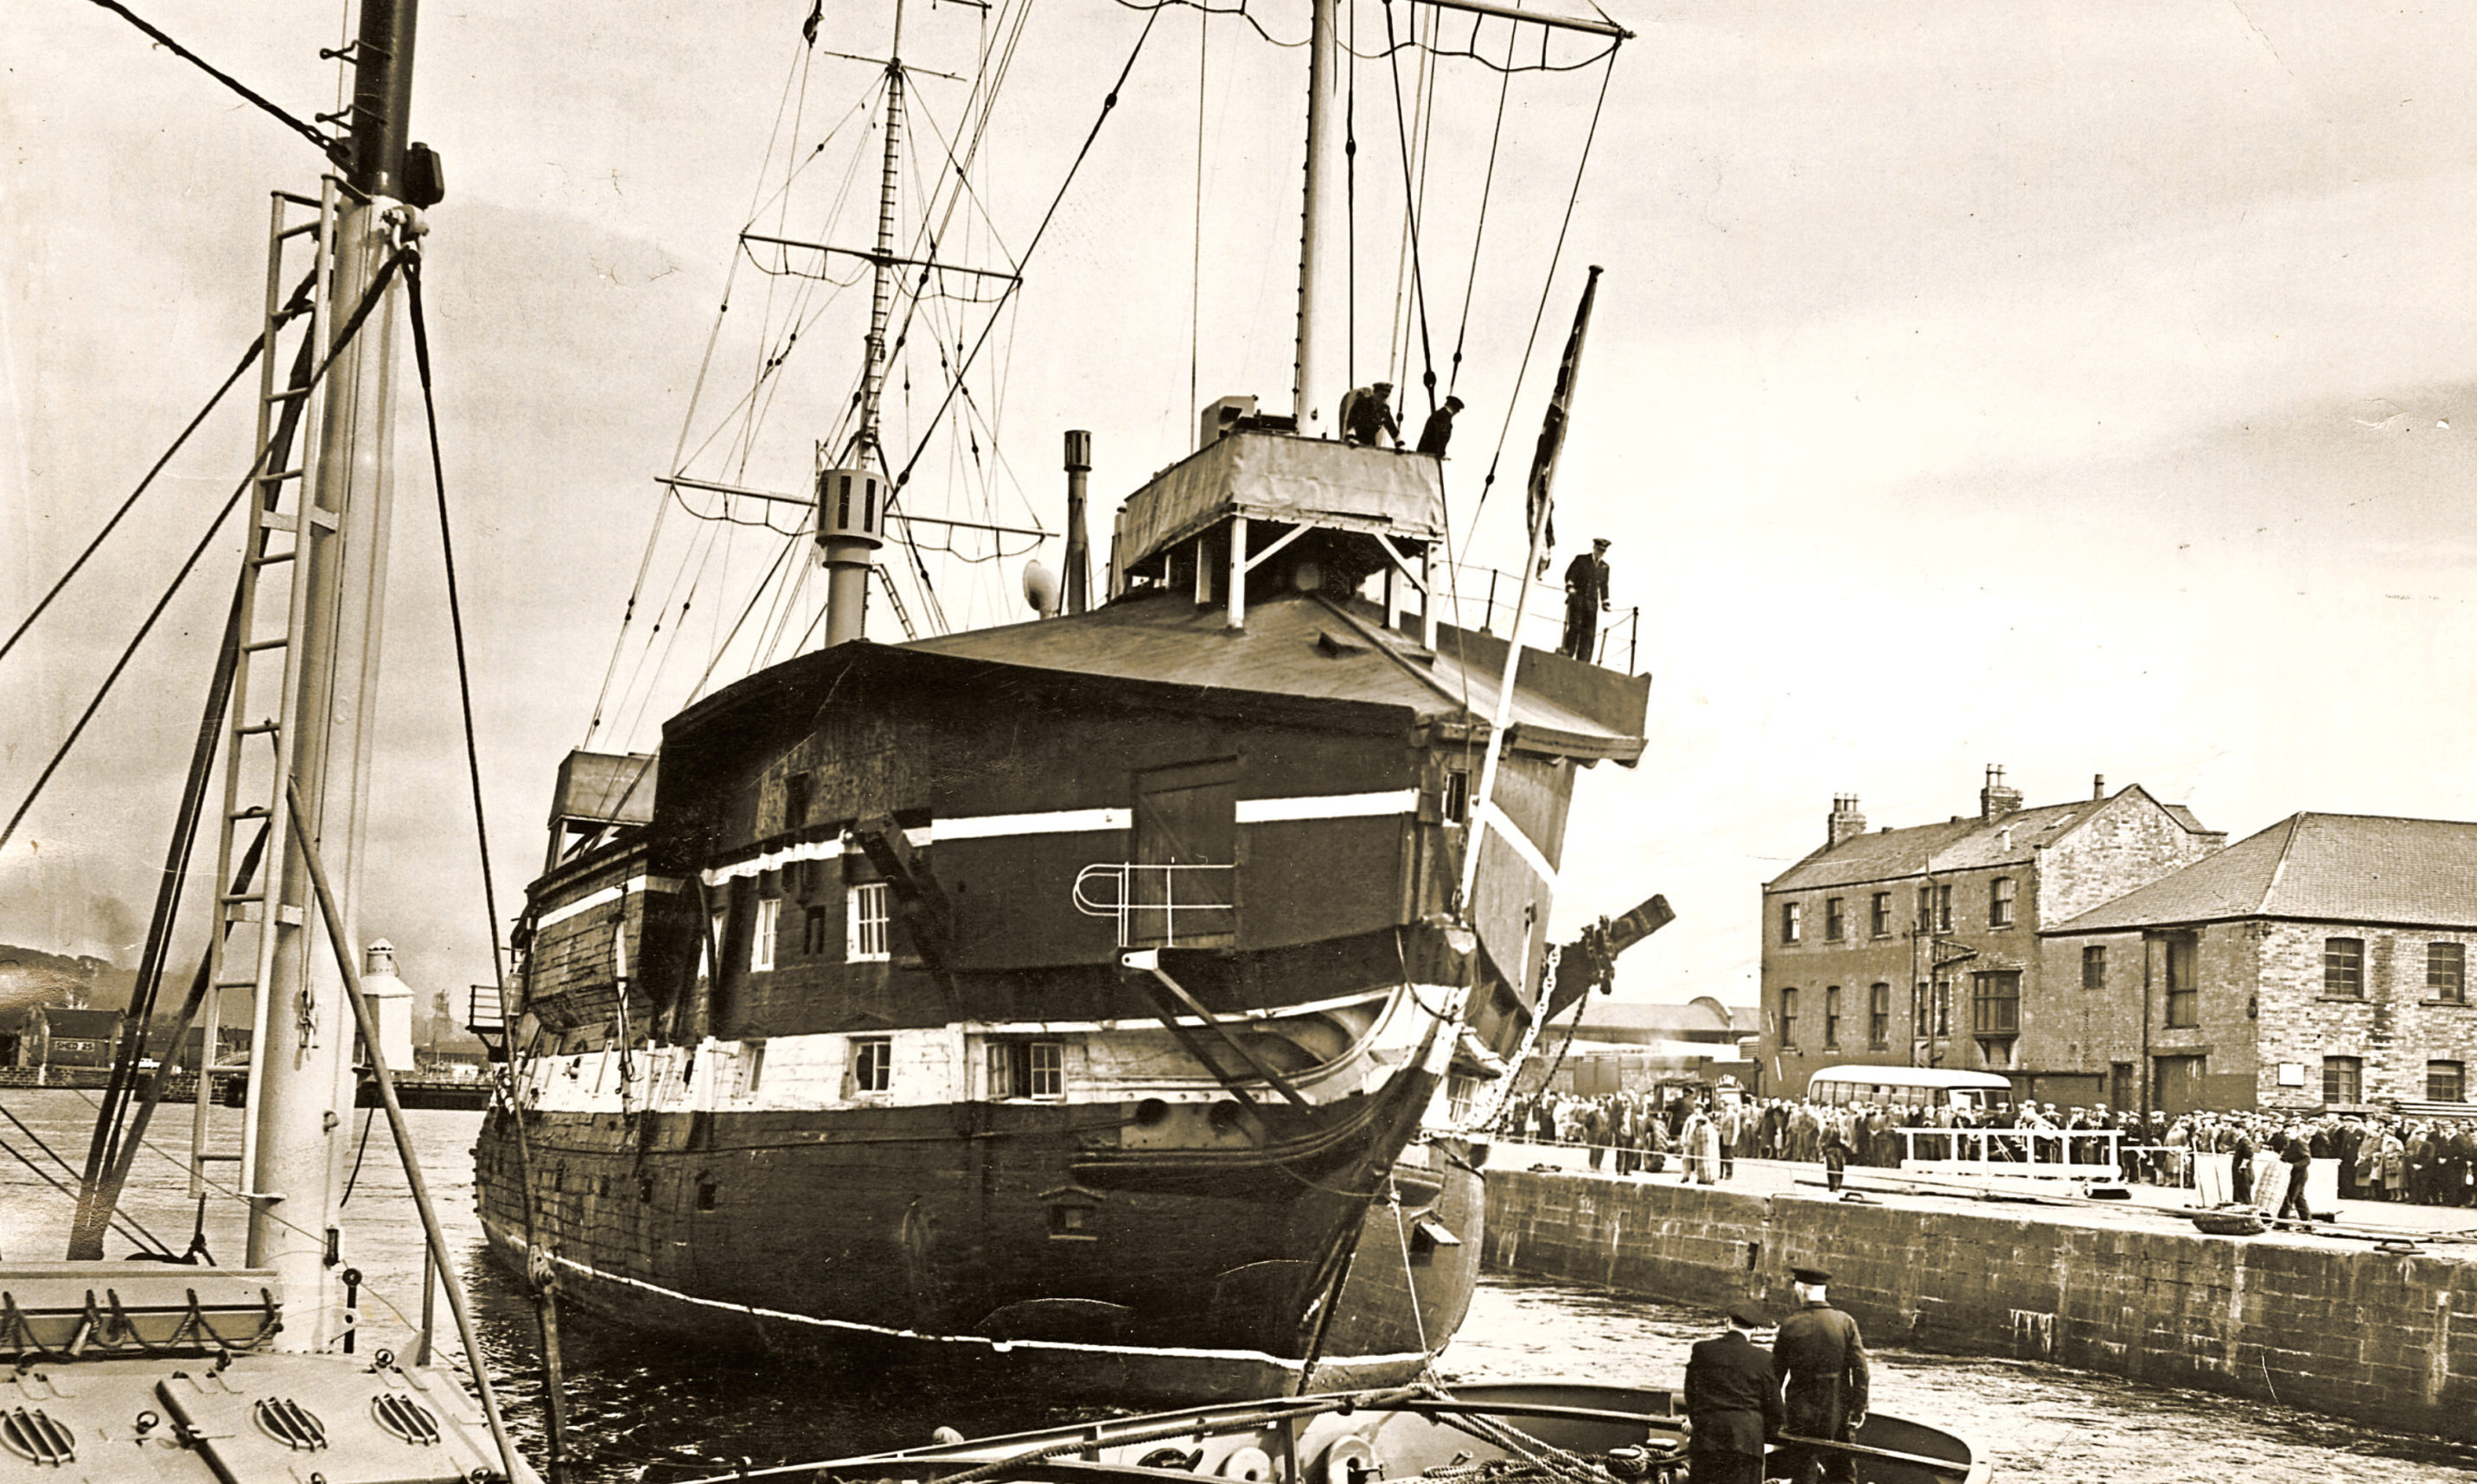 View of HMS Unicorn at Victoria Dock in Dundee in 1963.